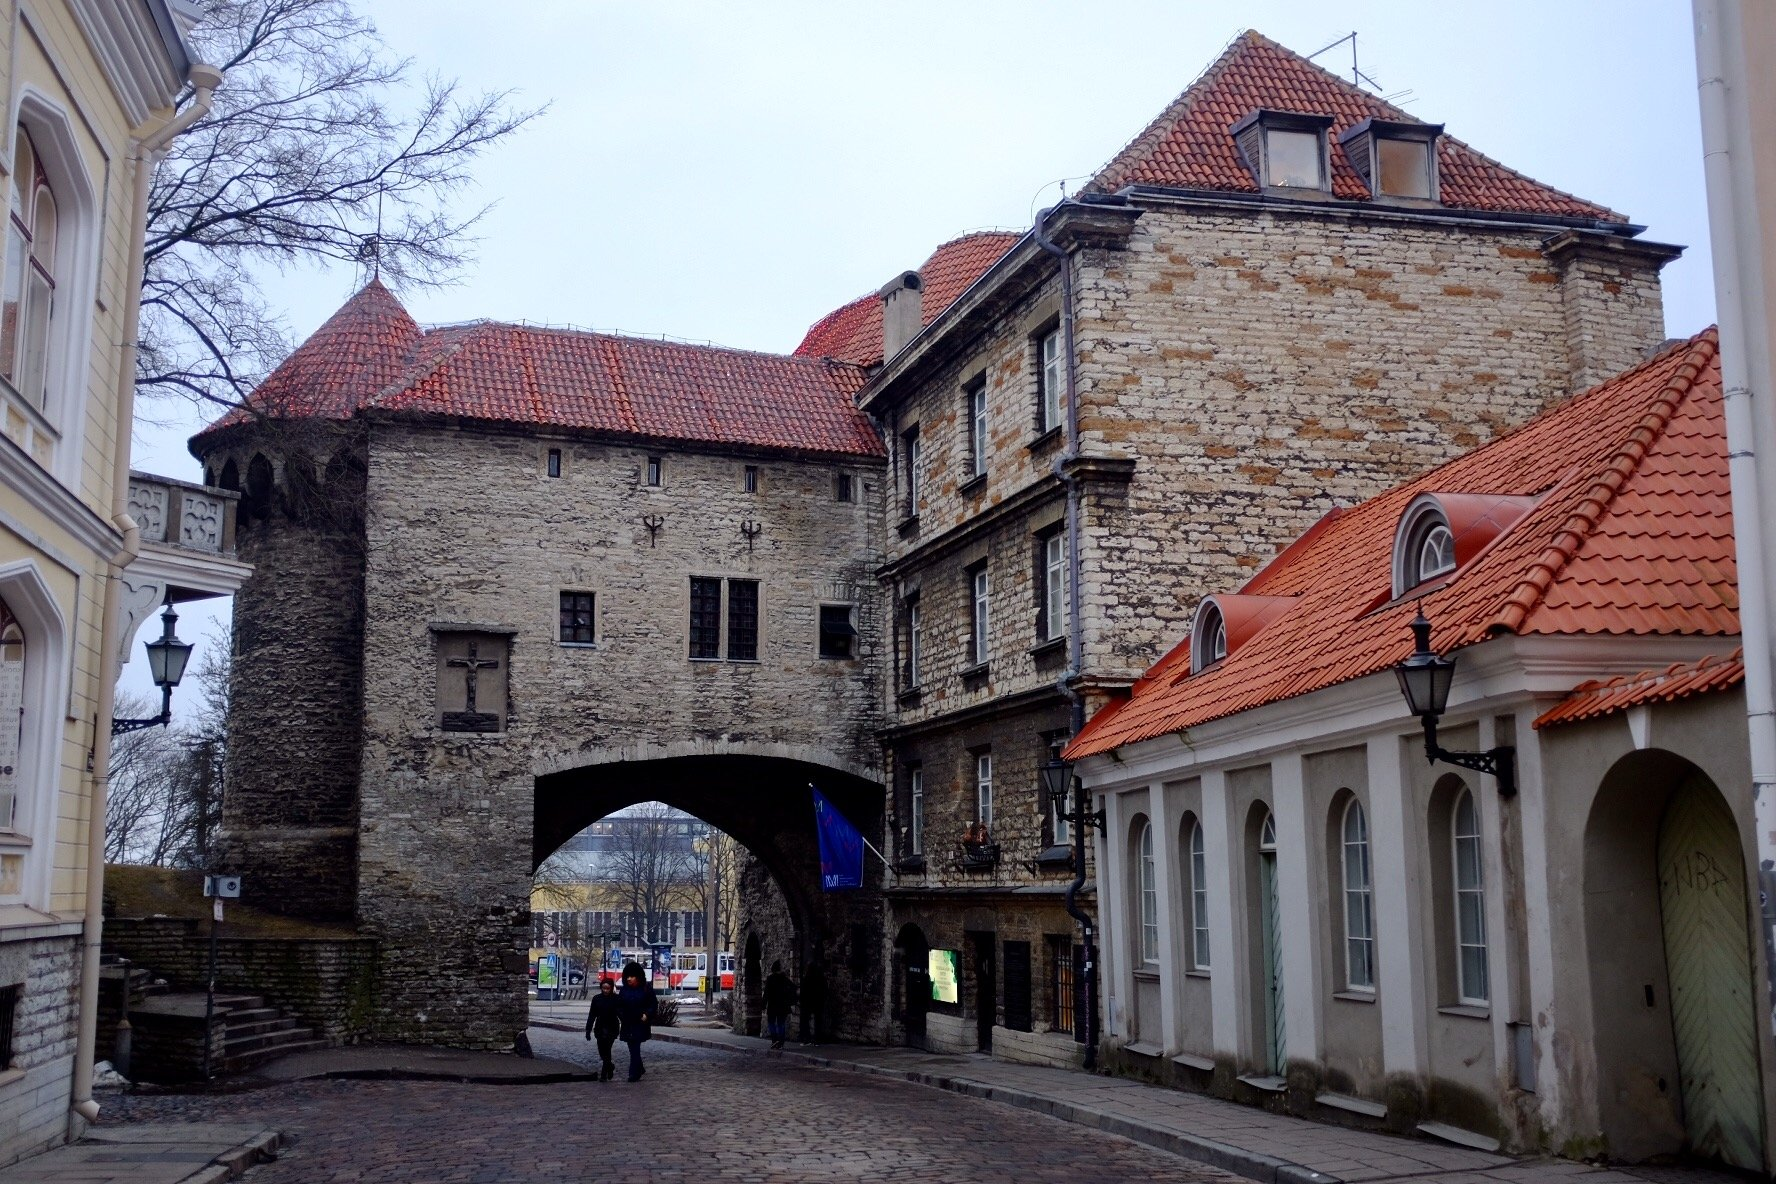 Fat Margeret as seen from within the walls of Tallinn